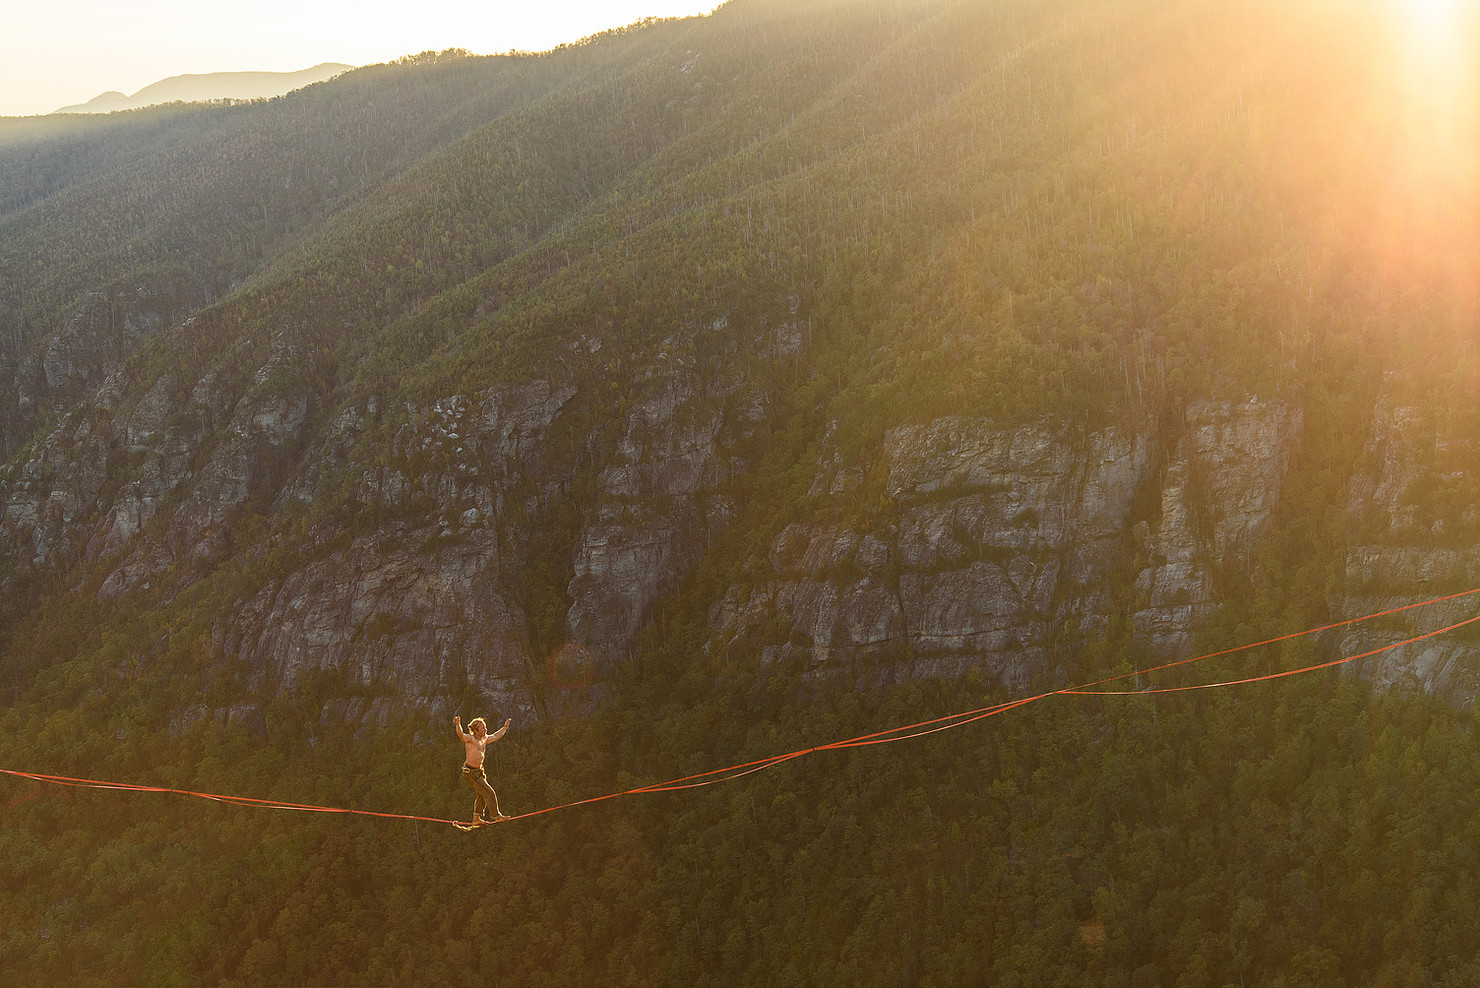 Dave Humphrey walking across Linville Gorgeous high above the valley floor.